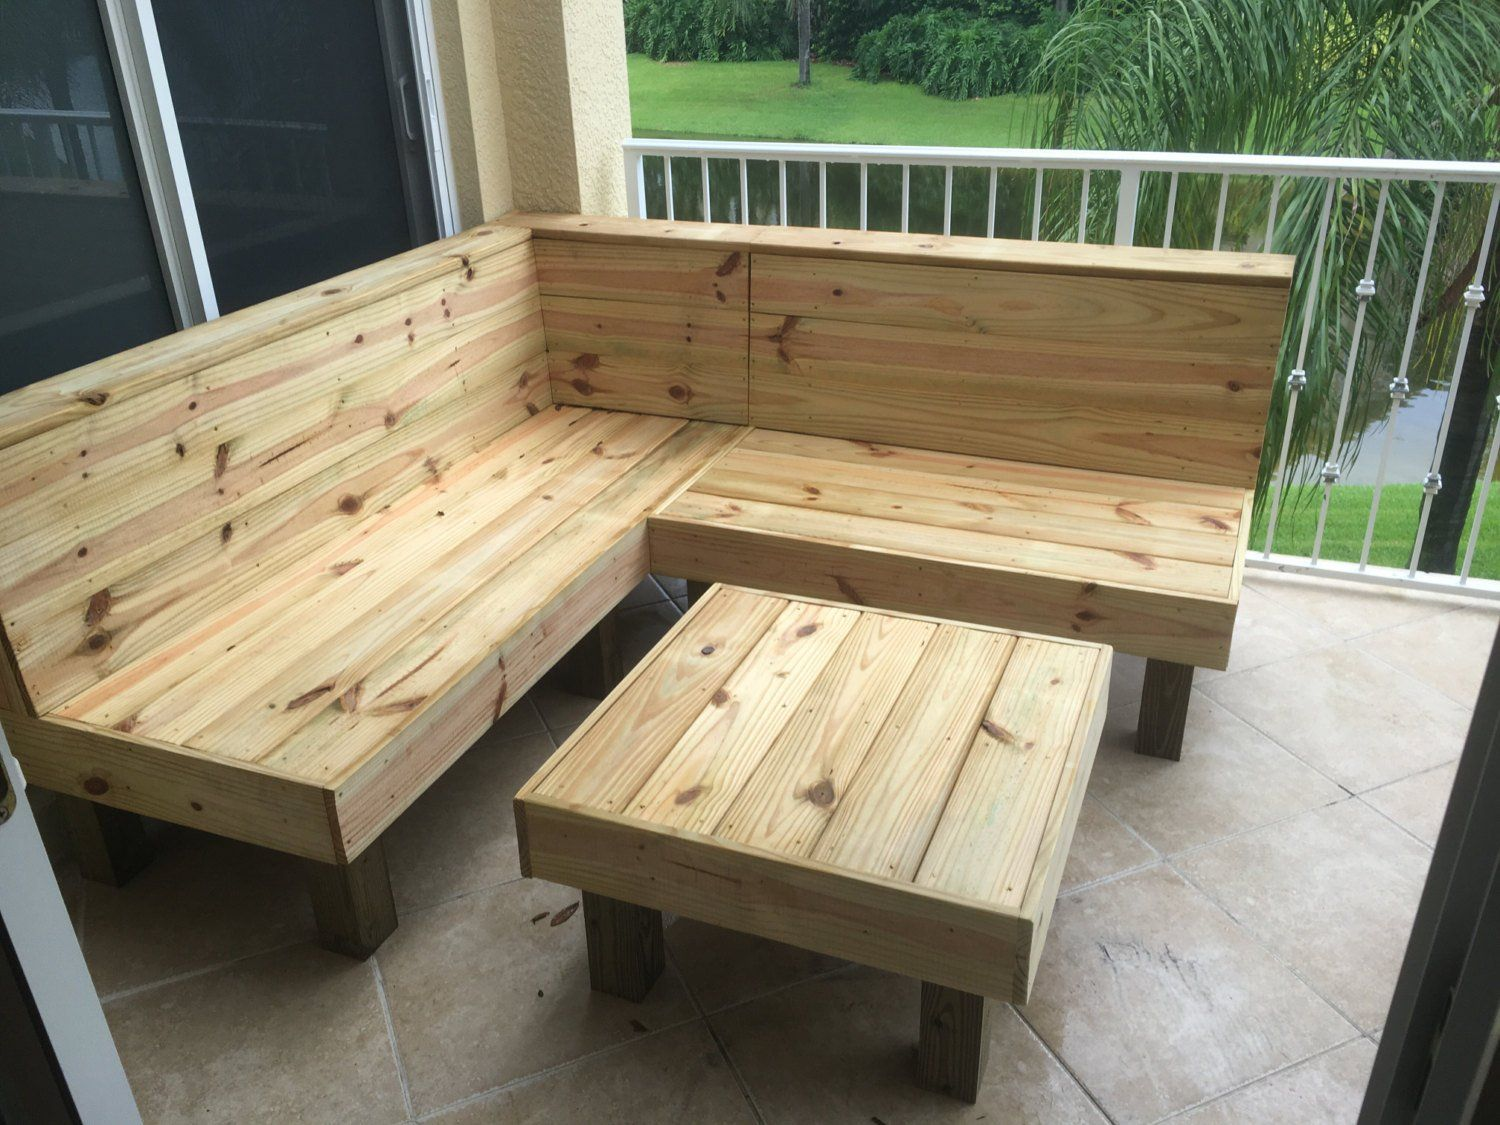 The Sectional Rustic Wood Patio Benches